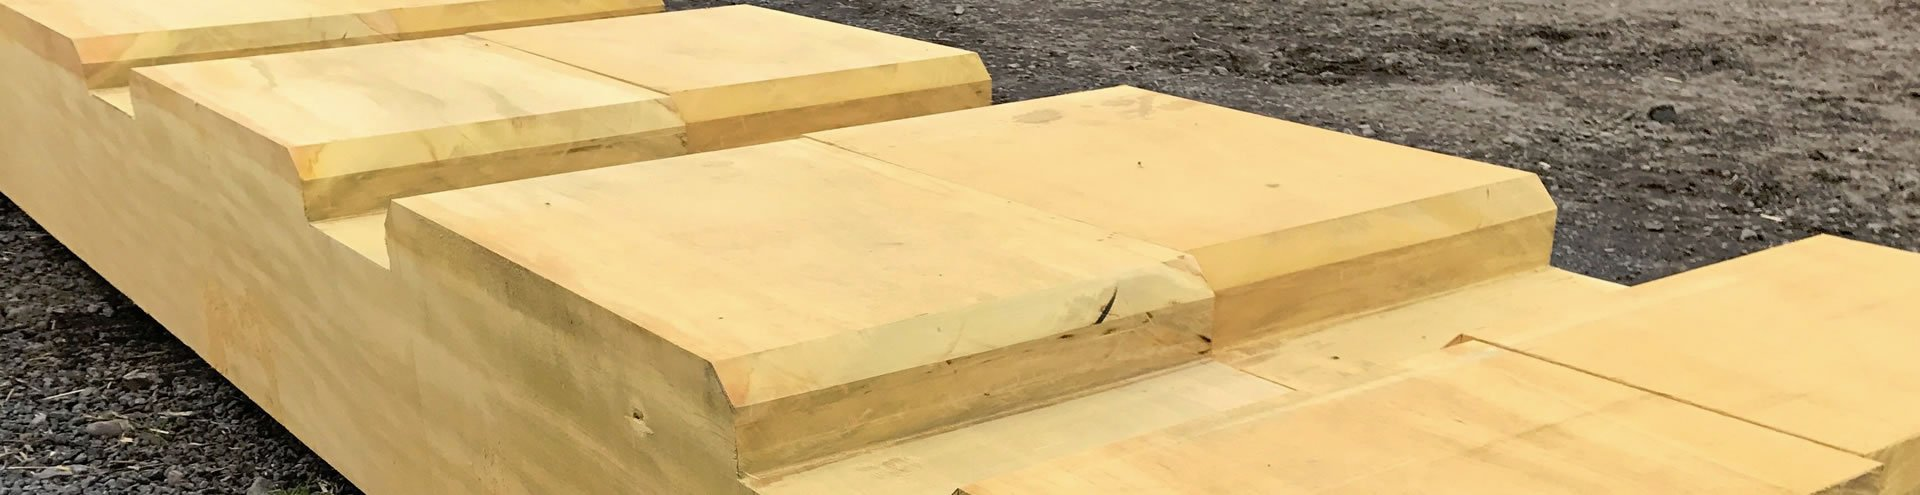 Timber Suppliers | Bespoke Timber | Opepe | Ryder Services